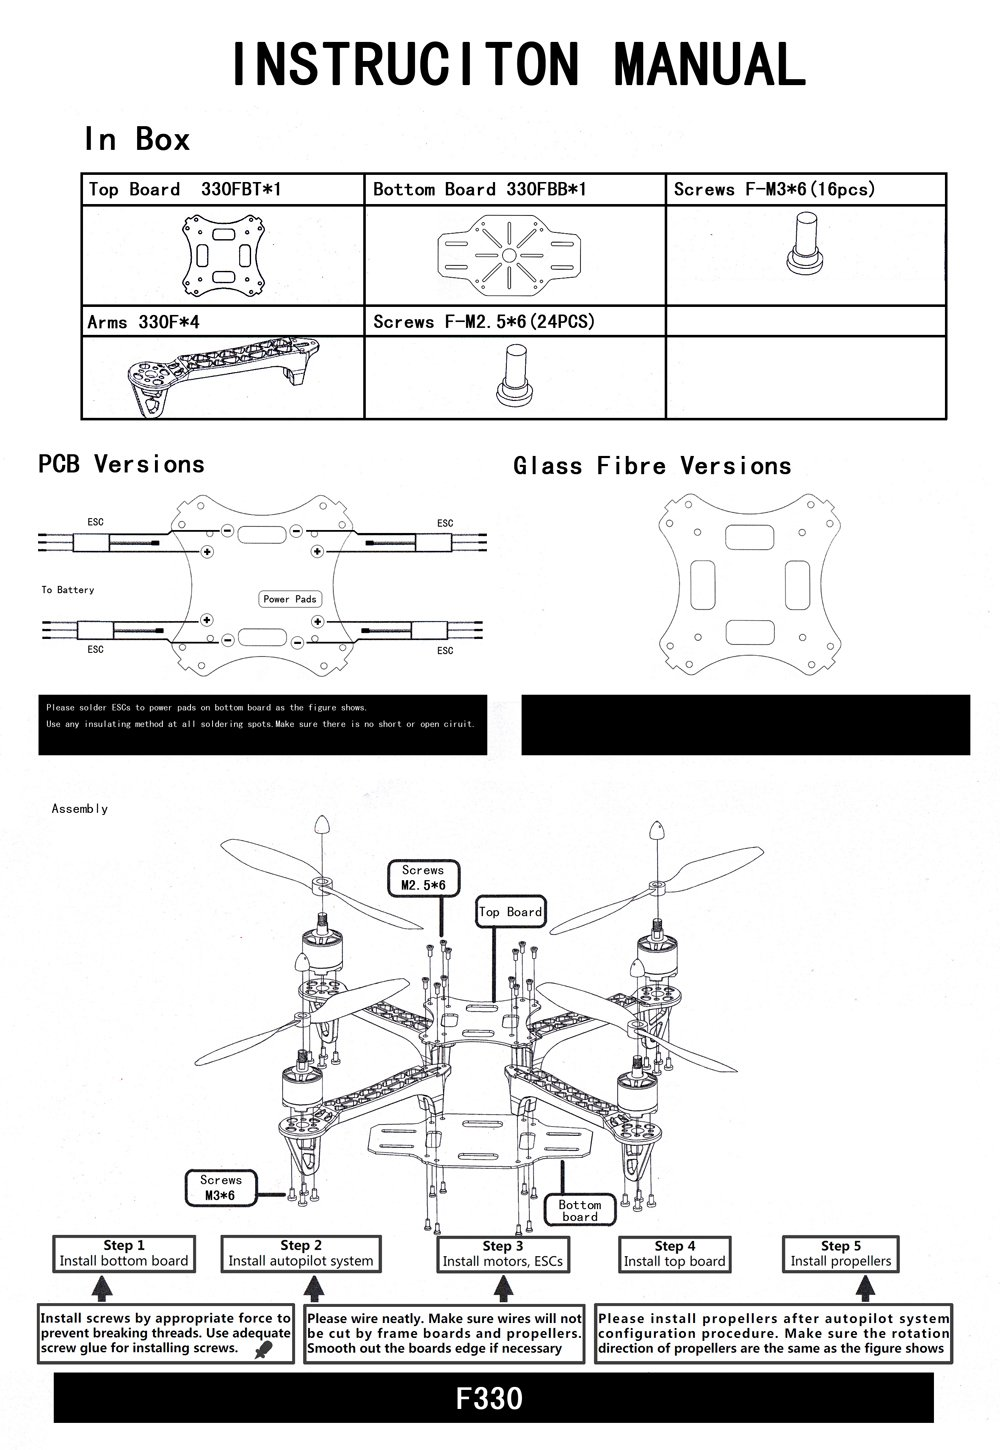 F330 330mm Mini 4 Axis Quadcopter Aircraft Shaft Rack Flamewheel F450 Wiring Diagram Frame Glass Fiber Center Pdb Board For Diy Fpv Racing Spare Part Toys Games